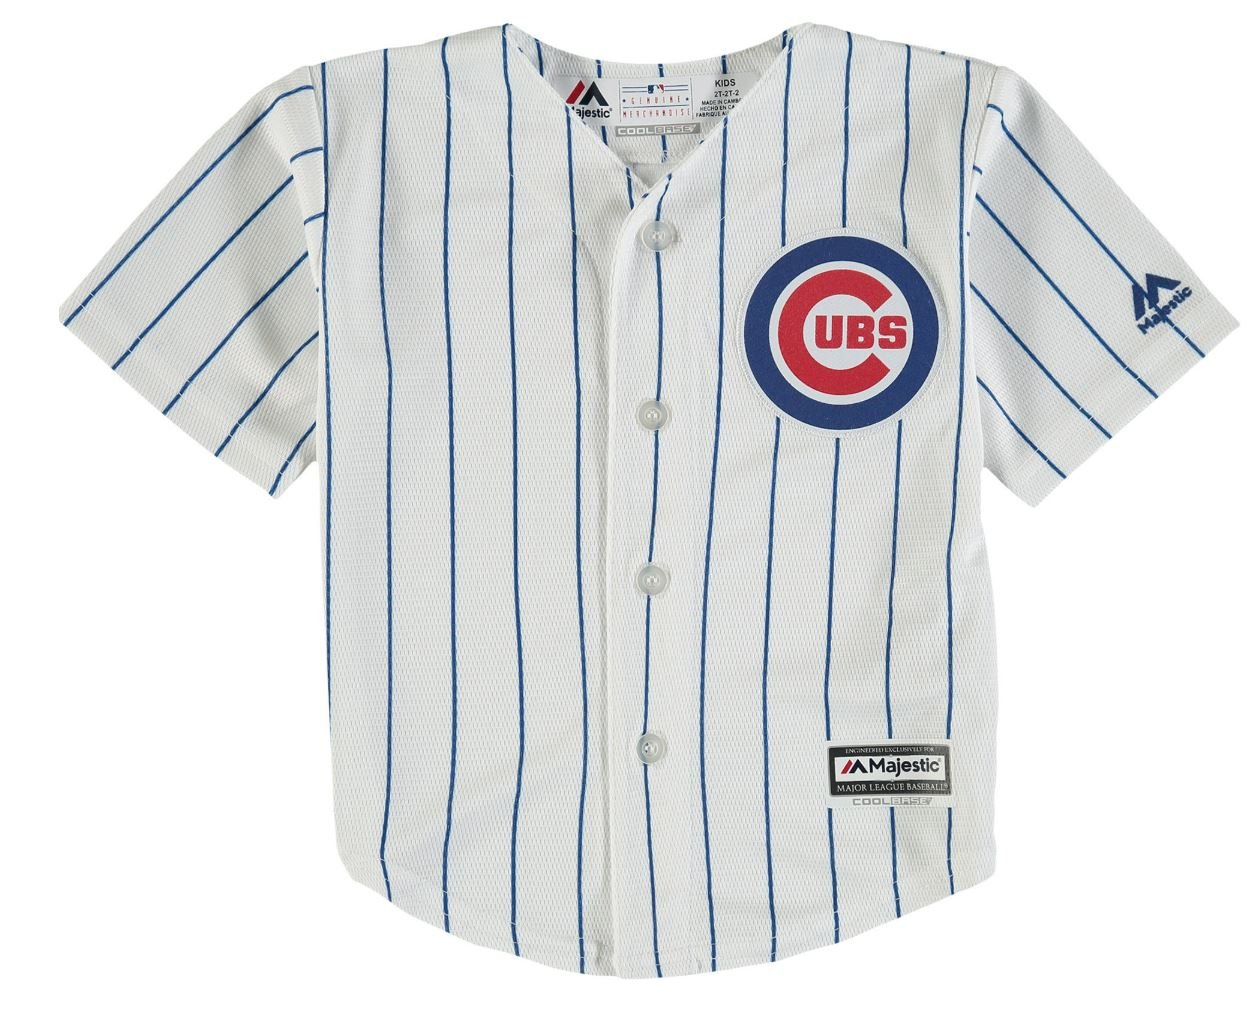 351b12db2a8 Amazon.com  Chicago Cubs Home Infant Cool Base Replica Jersey by Majestic  Select Infant   Toddler   Youth Size  24 Months  Sports   Outdoors